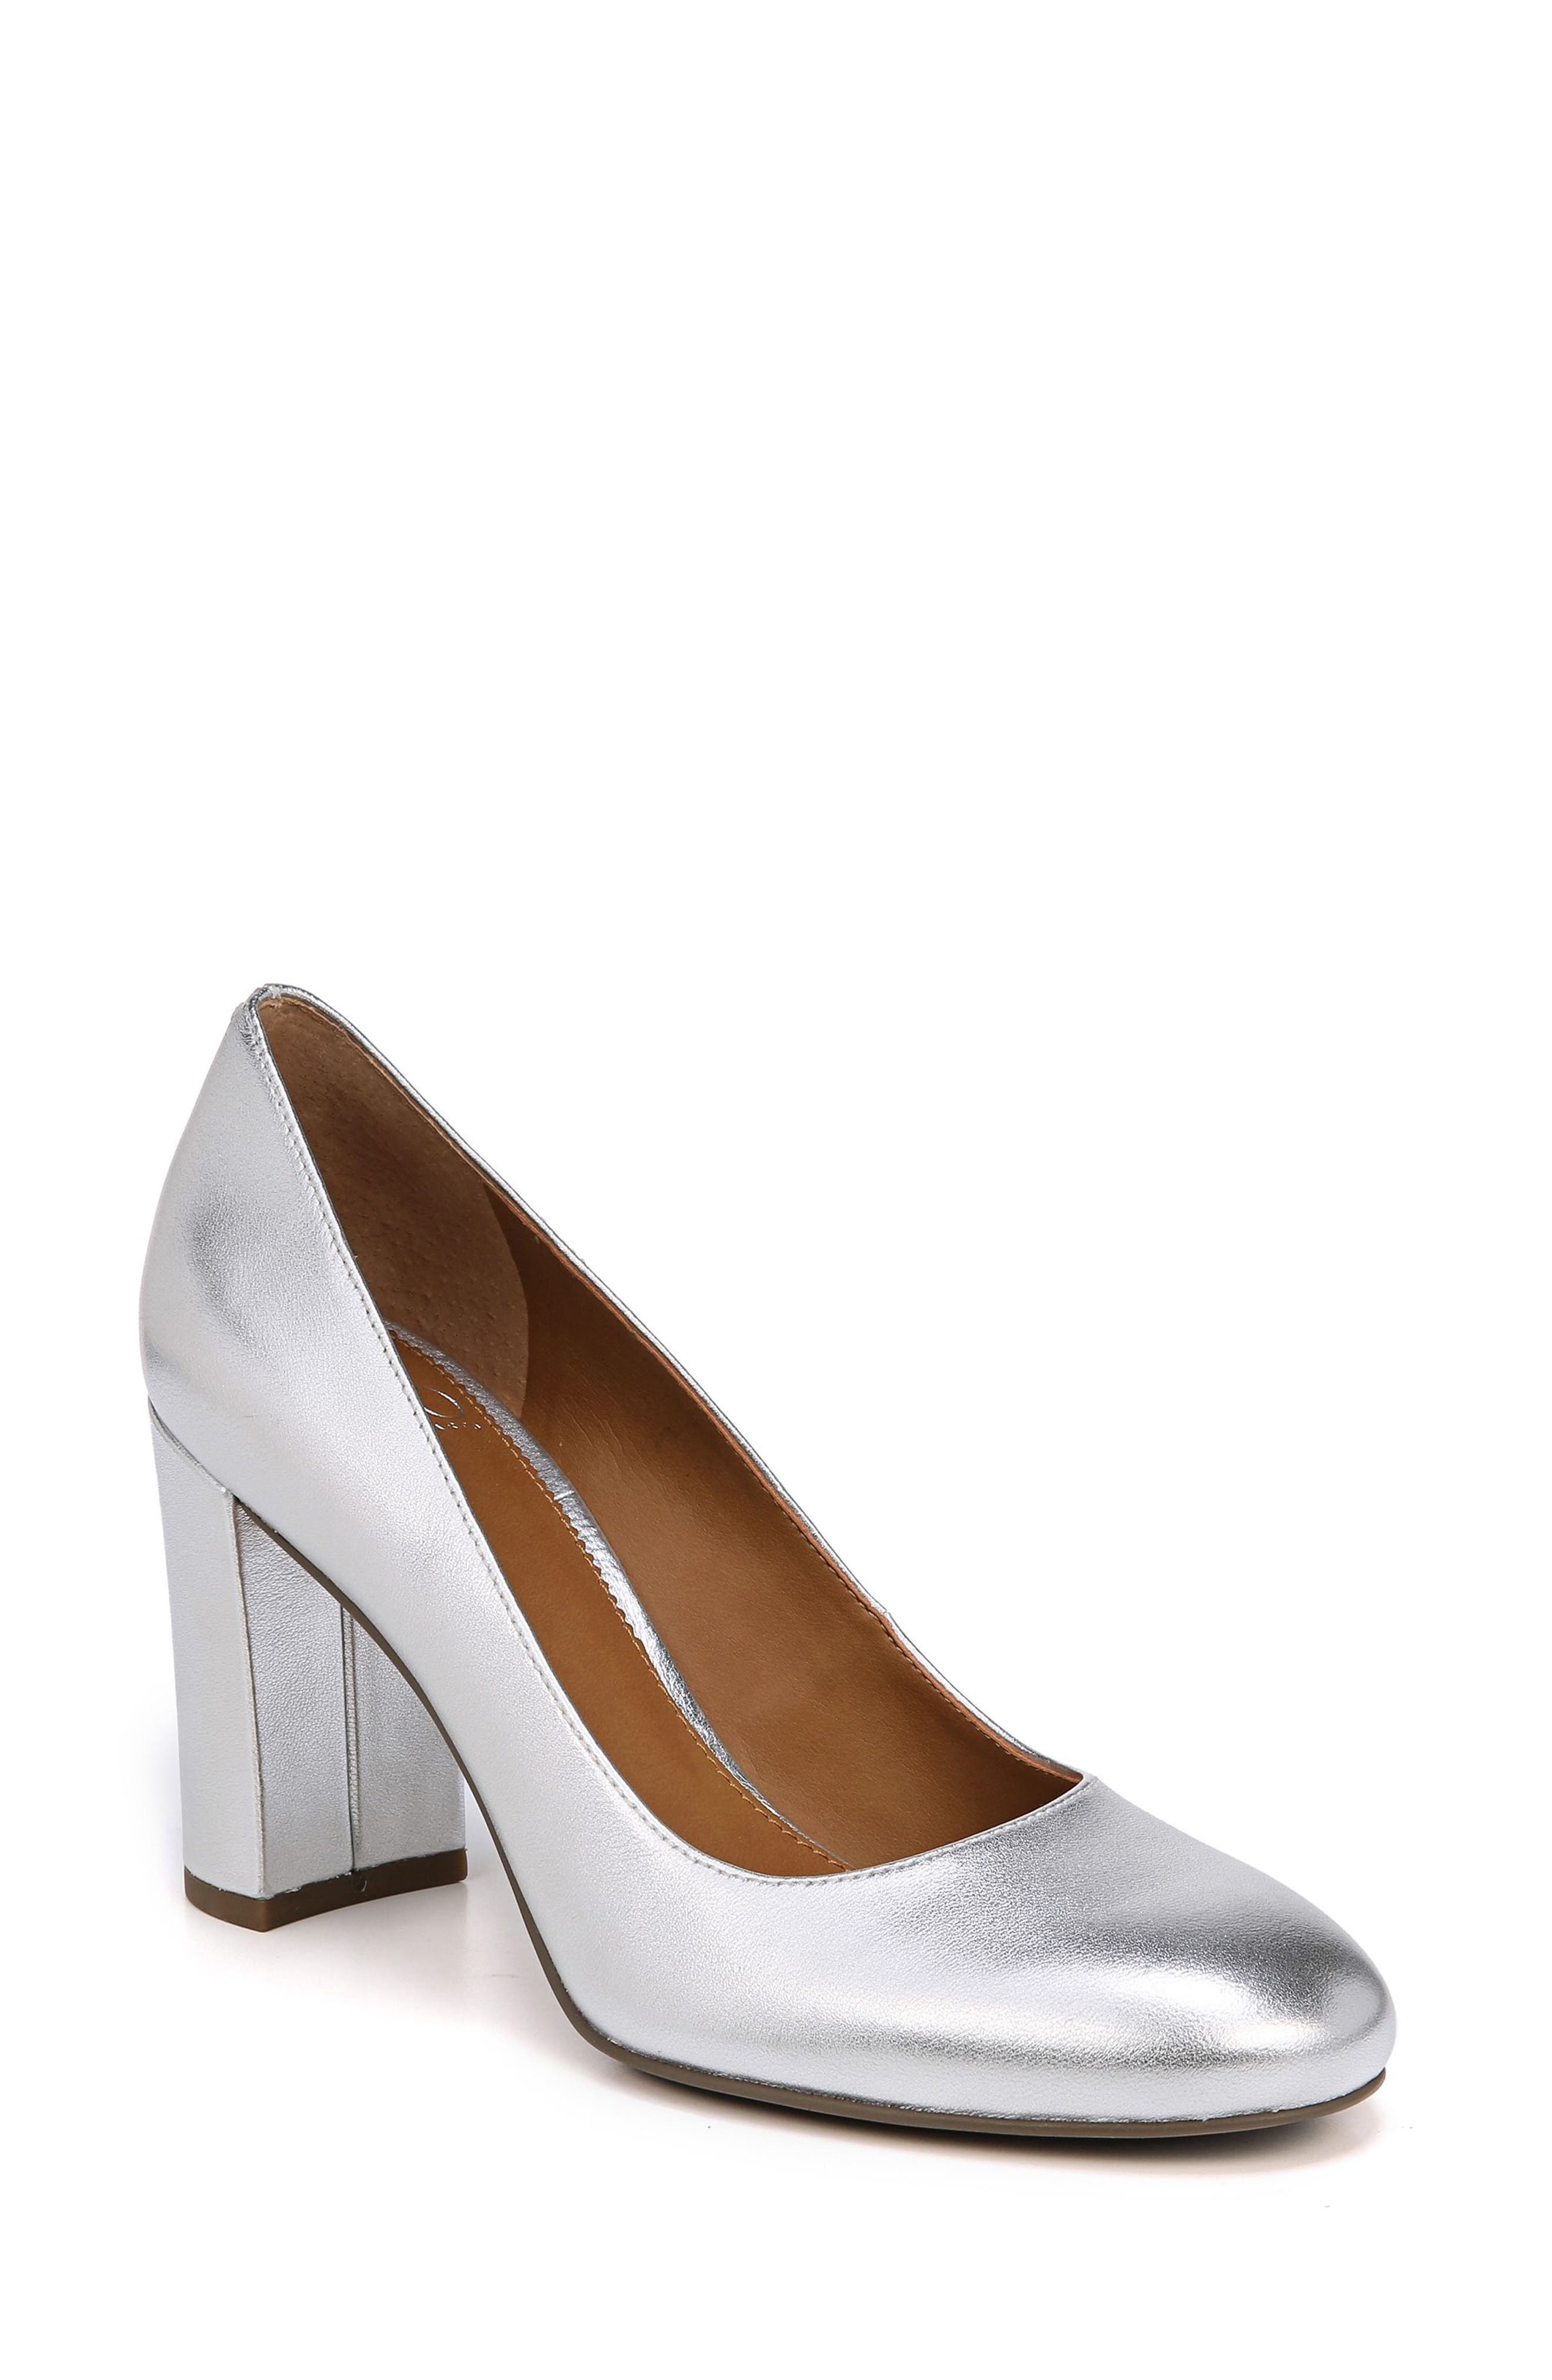 Aziza Block Heel Pump,                             Main thumbnail 1, color,                             Silver Leather